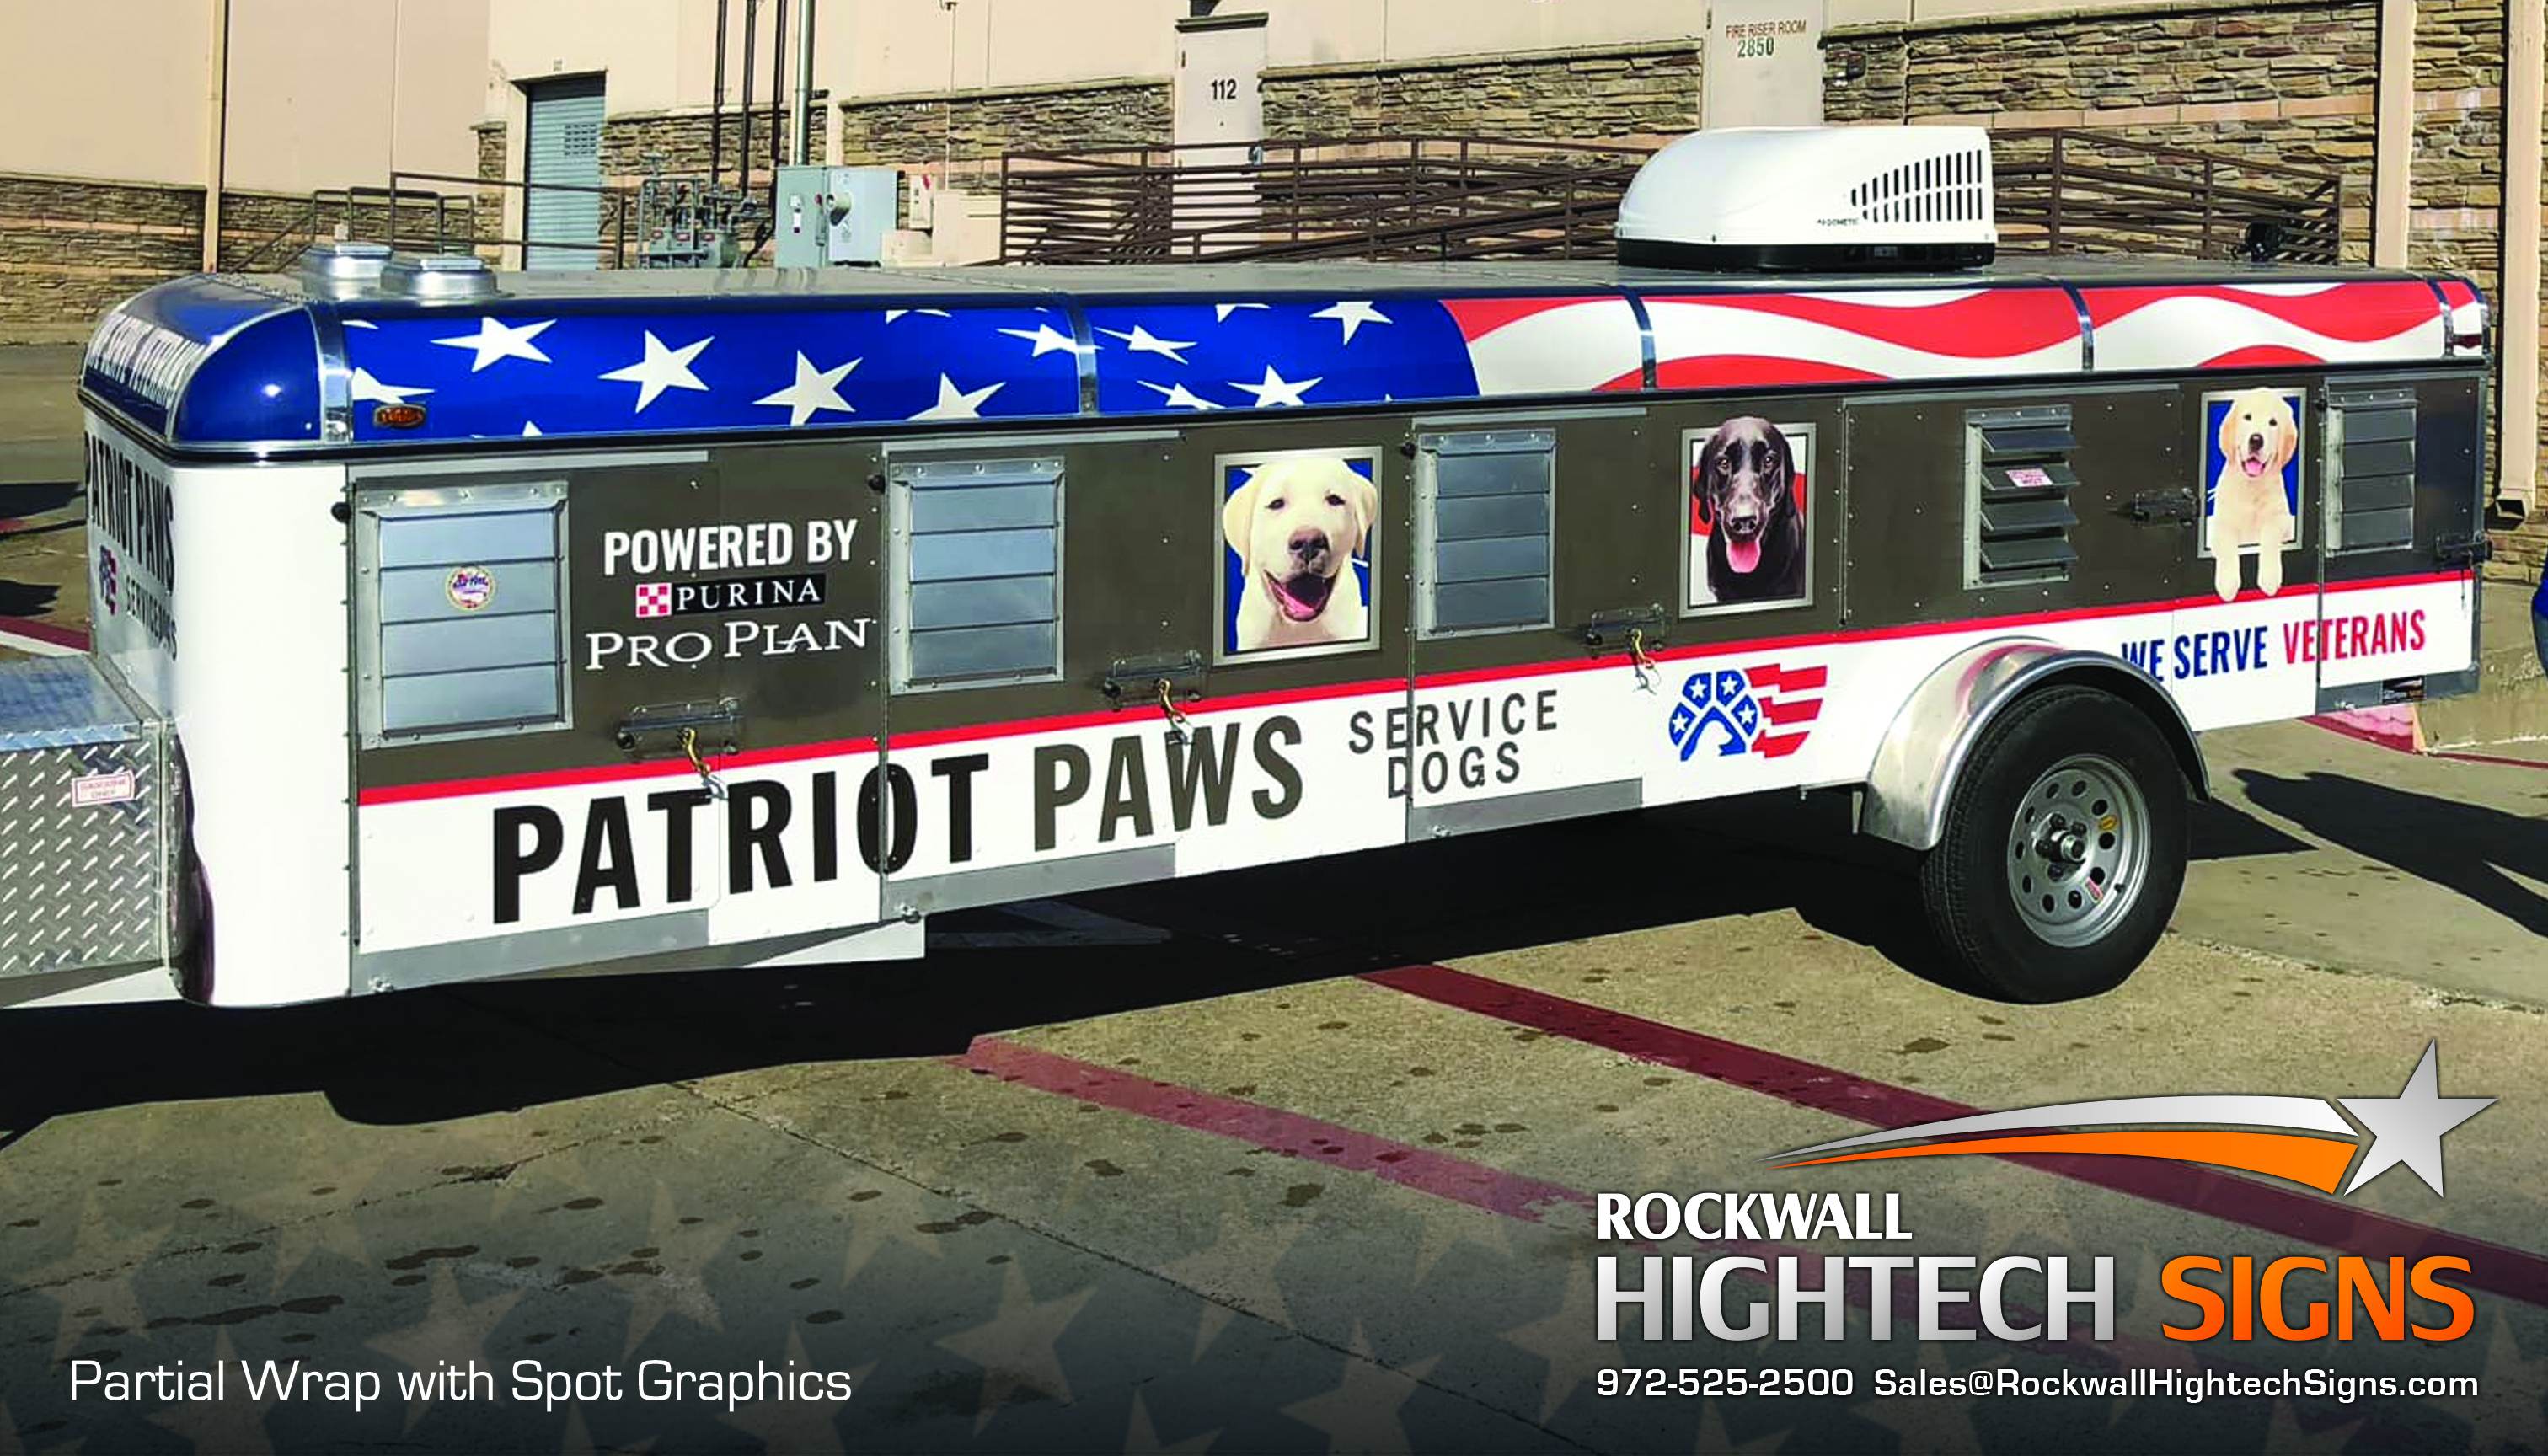 Patriot Paws Service Dogs